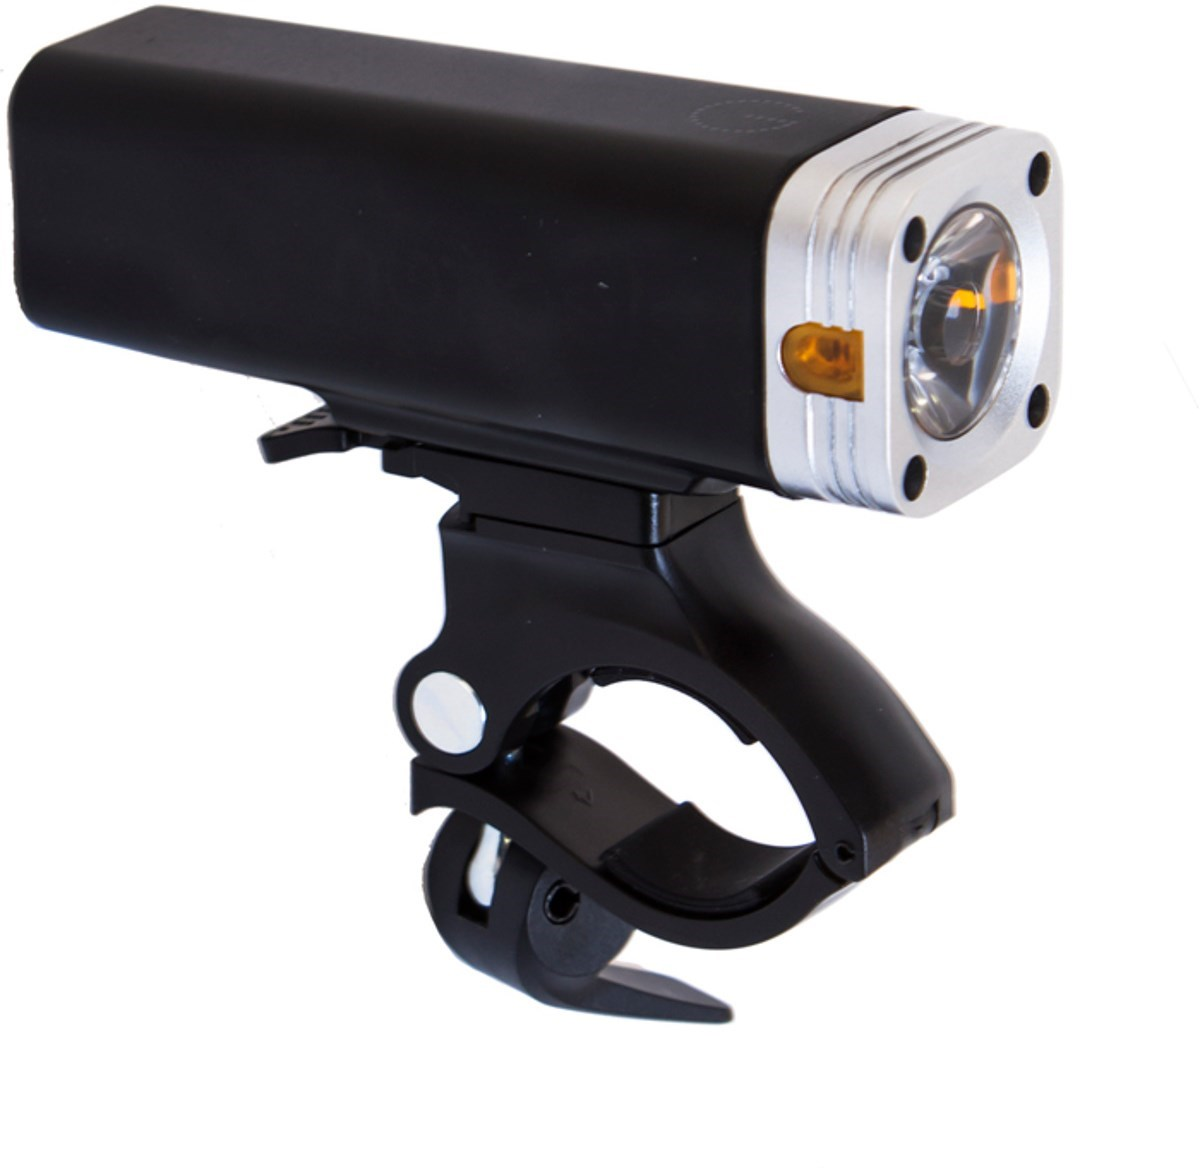 Electron F-200 Lumen Single LED USB Rechargeable Front Light